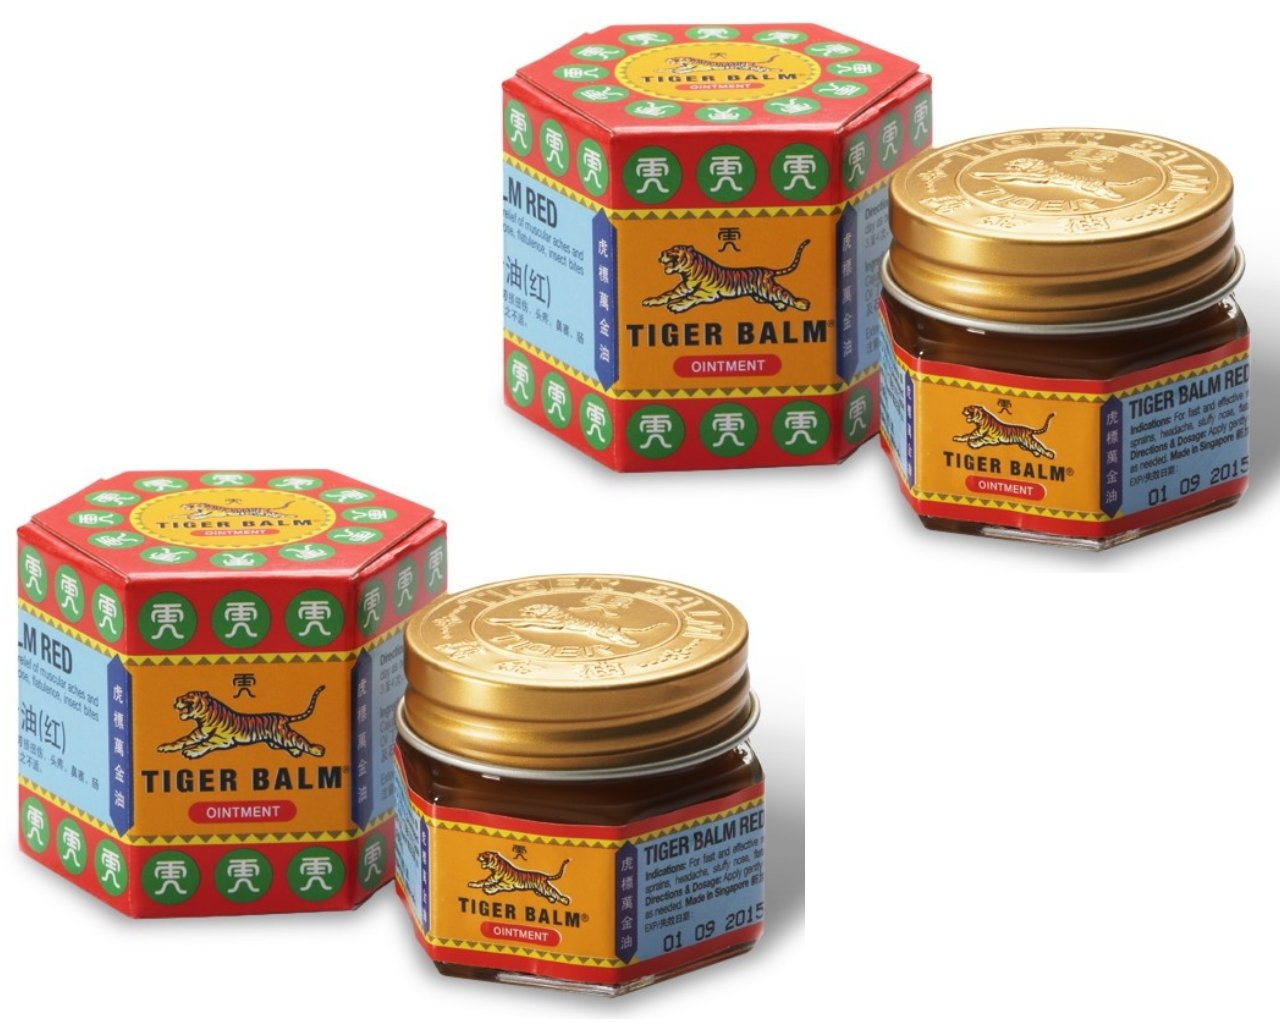 2X Lot Tiger Balm Red Medicated Ointments Oil 30g - soothing muscular aches and pains